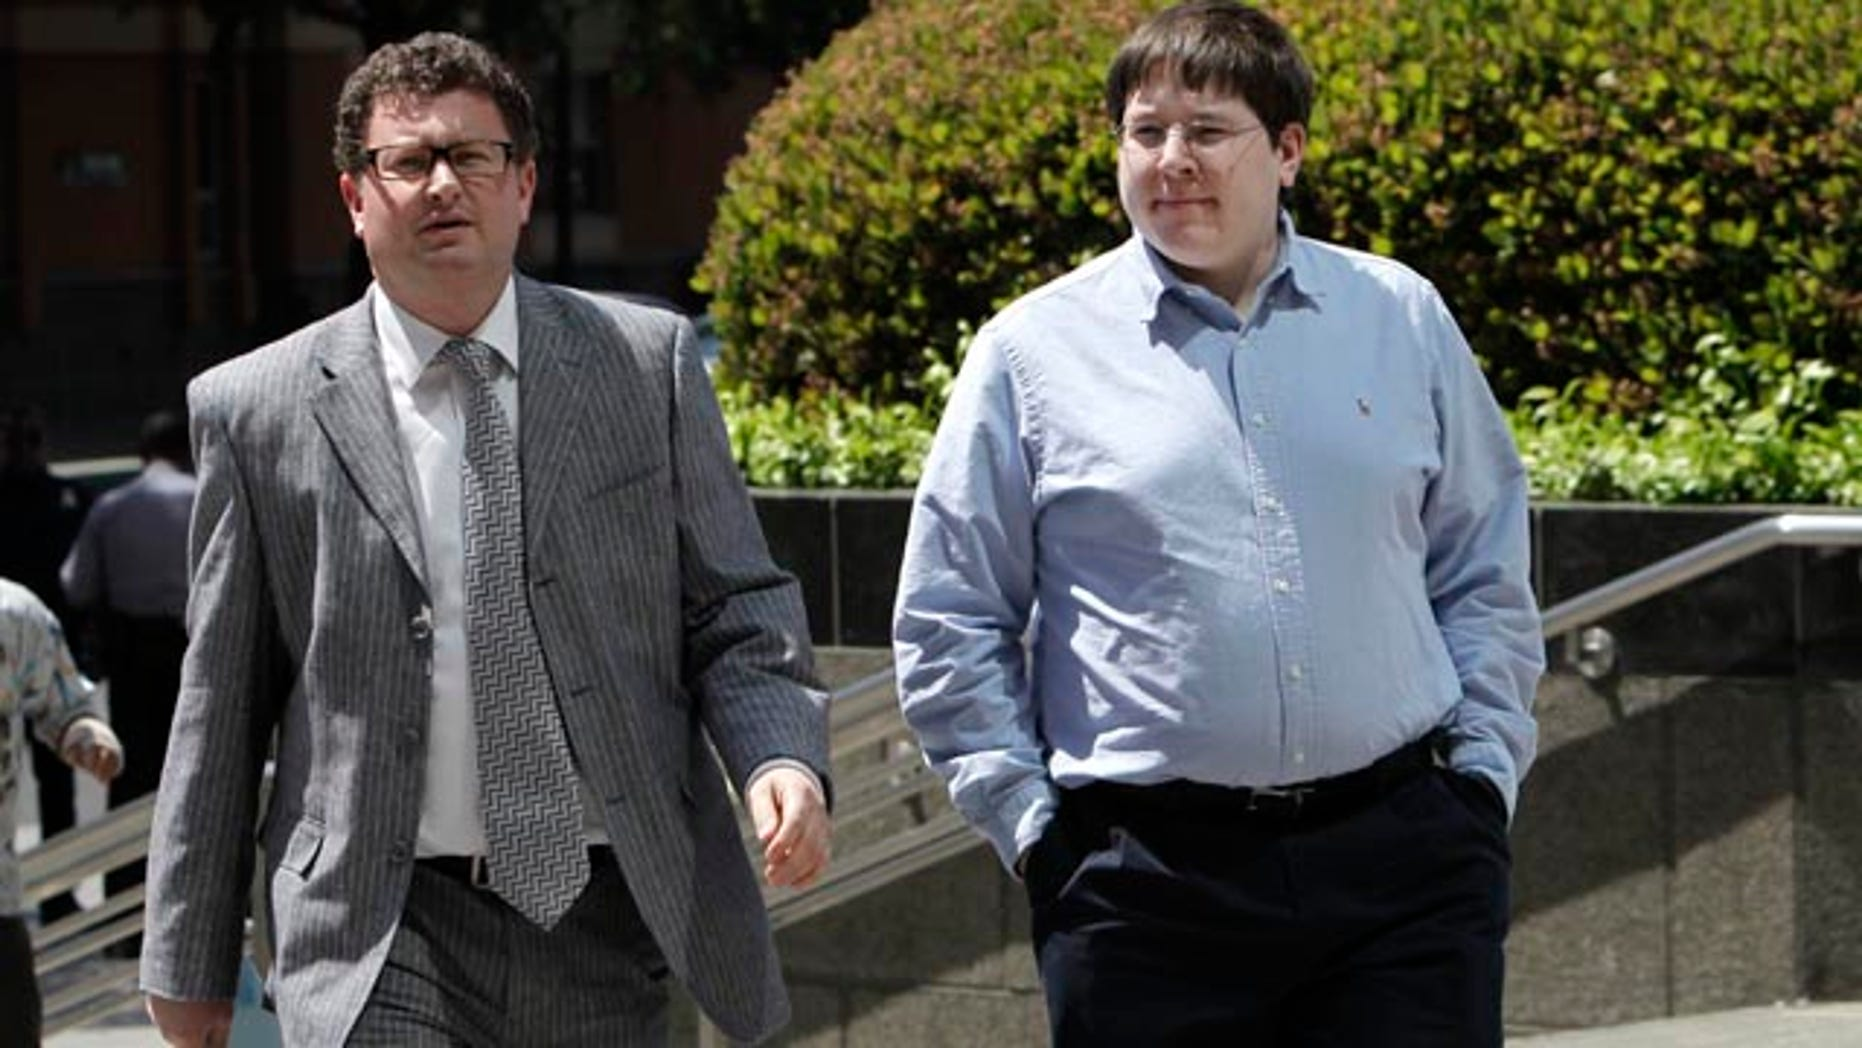 FILE -- In this April 23, 2013 file photo, Matthew Keys, right, who faces federal charges that he allegedly conspired with the hacking group Anonymous to break into the Los Angeles Times' website, walks to the federal courthouse for his arraignment with his attorney Jason Leiderman, in Sacramento, Calif. (AP Photo/Rich Pedroncelli,file)